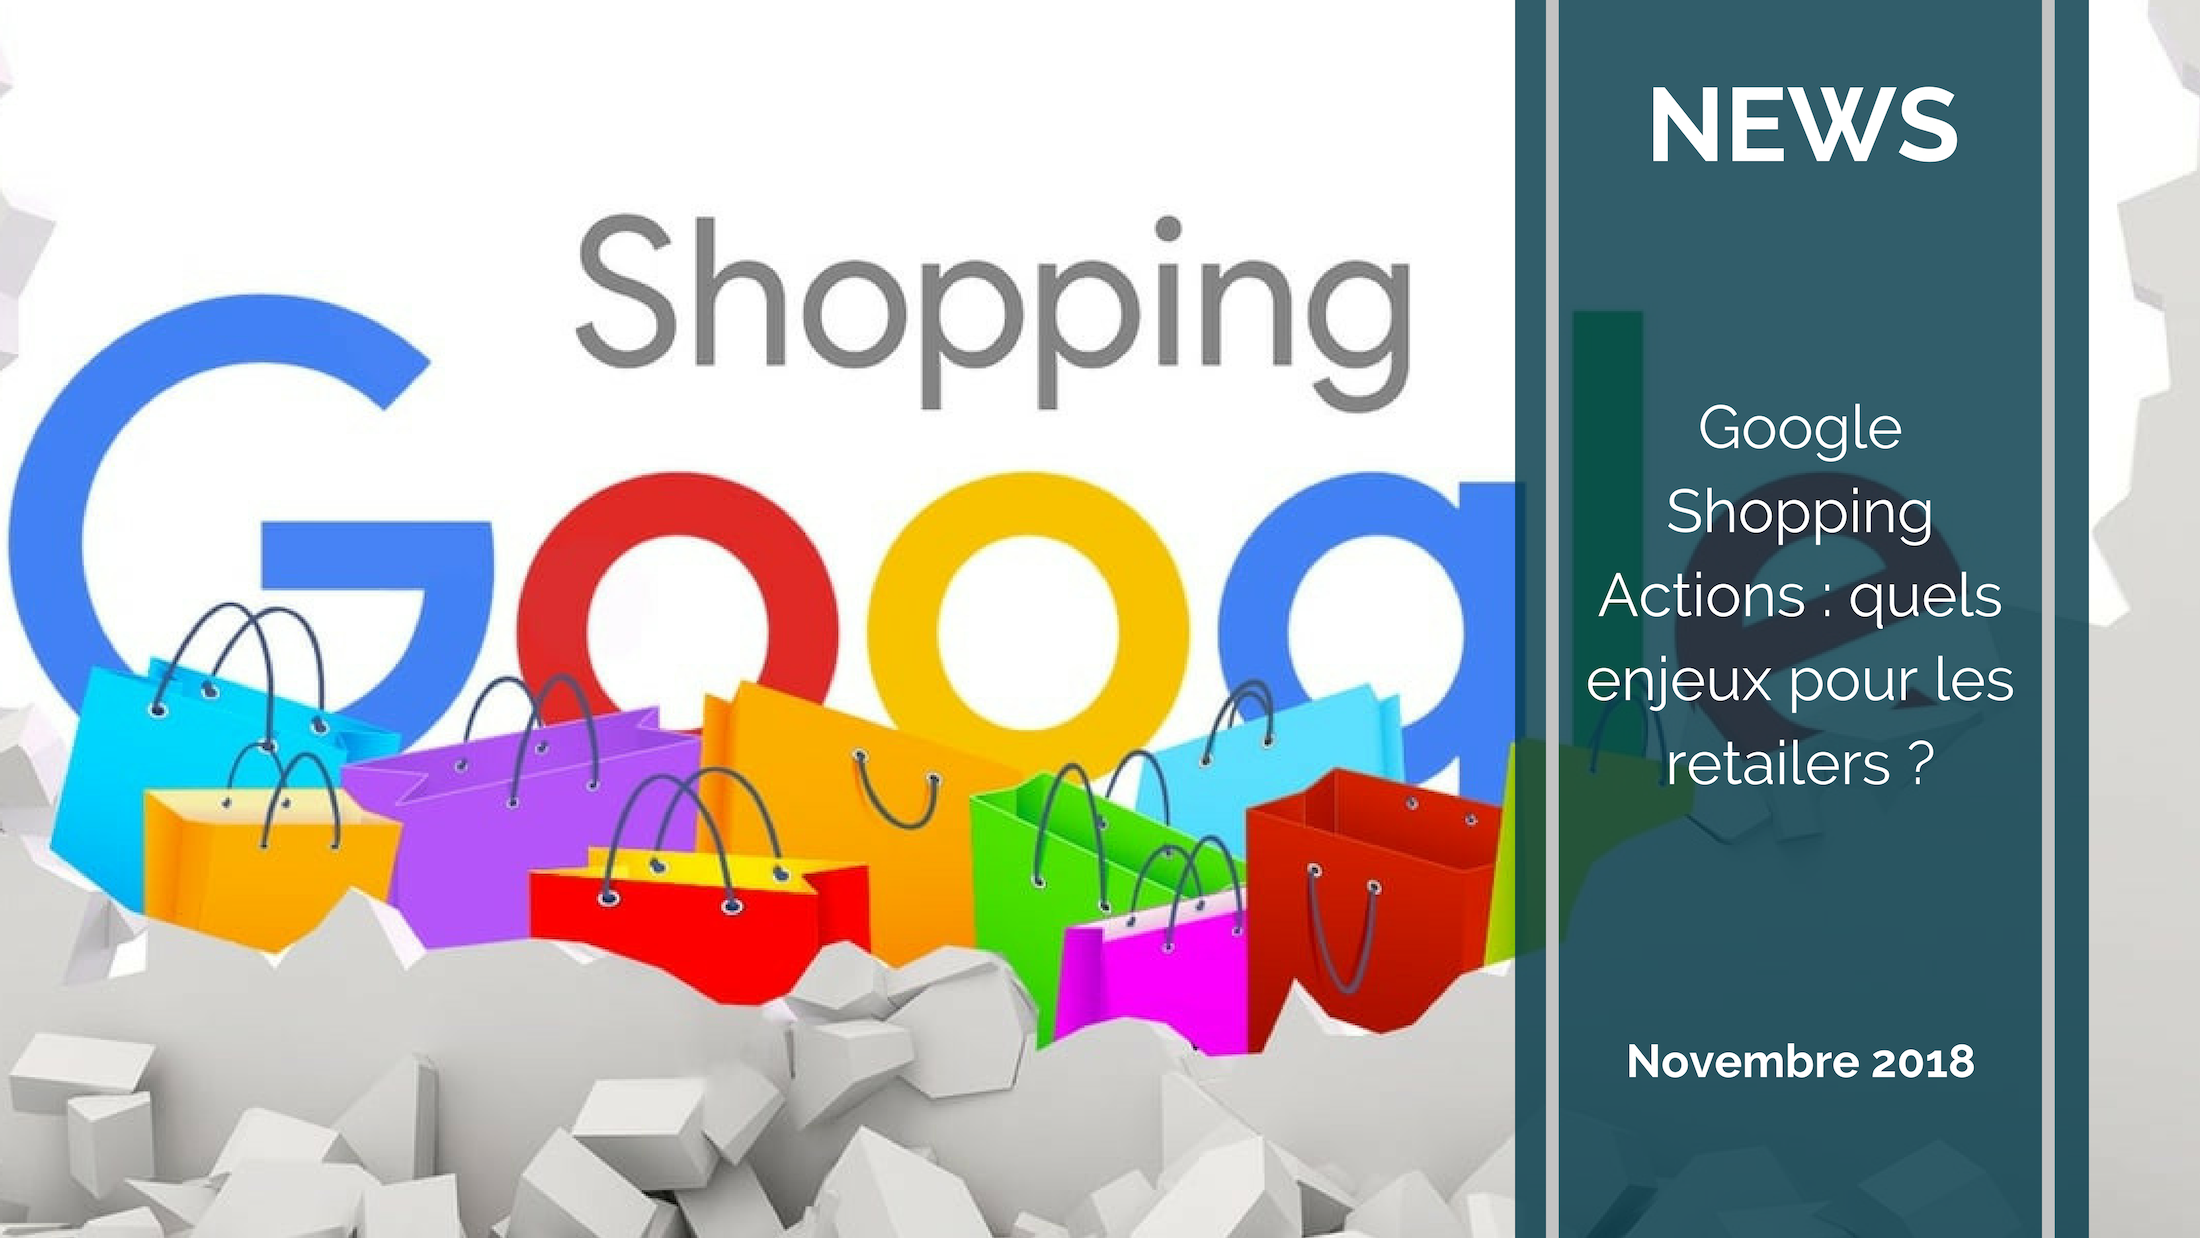 Trends News suite - Google Shopping Actions : quels enjeux pour les retailers ?